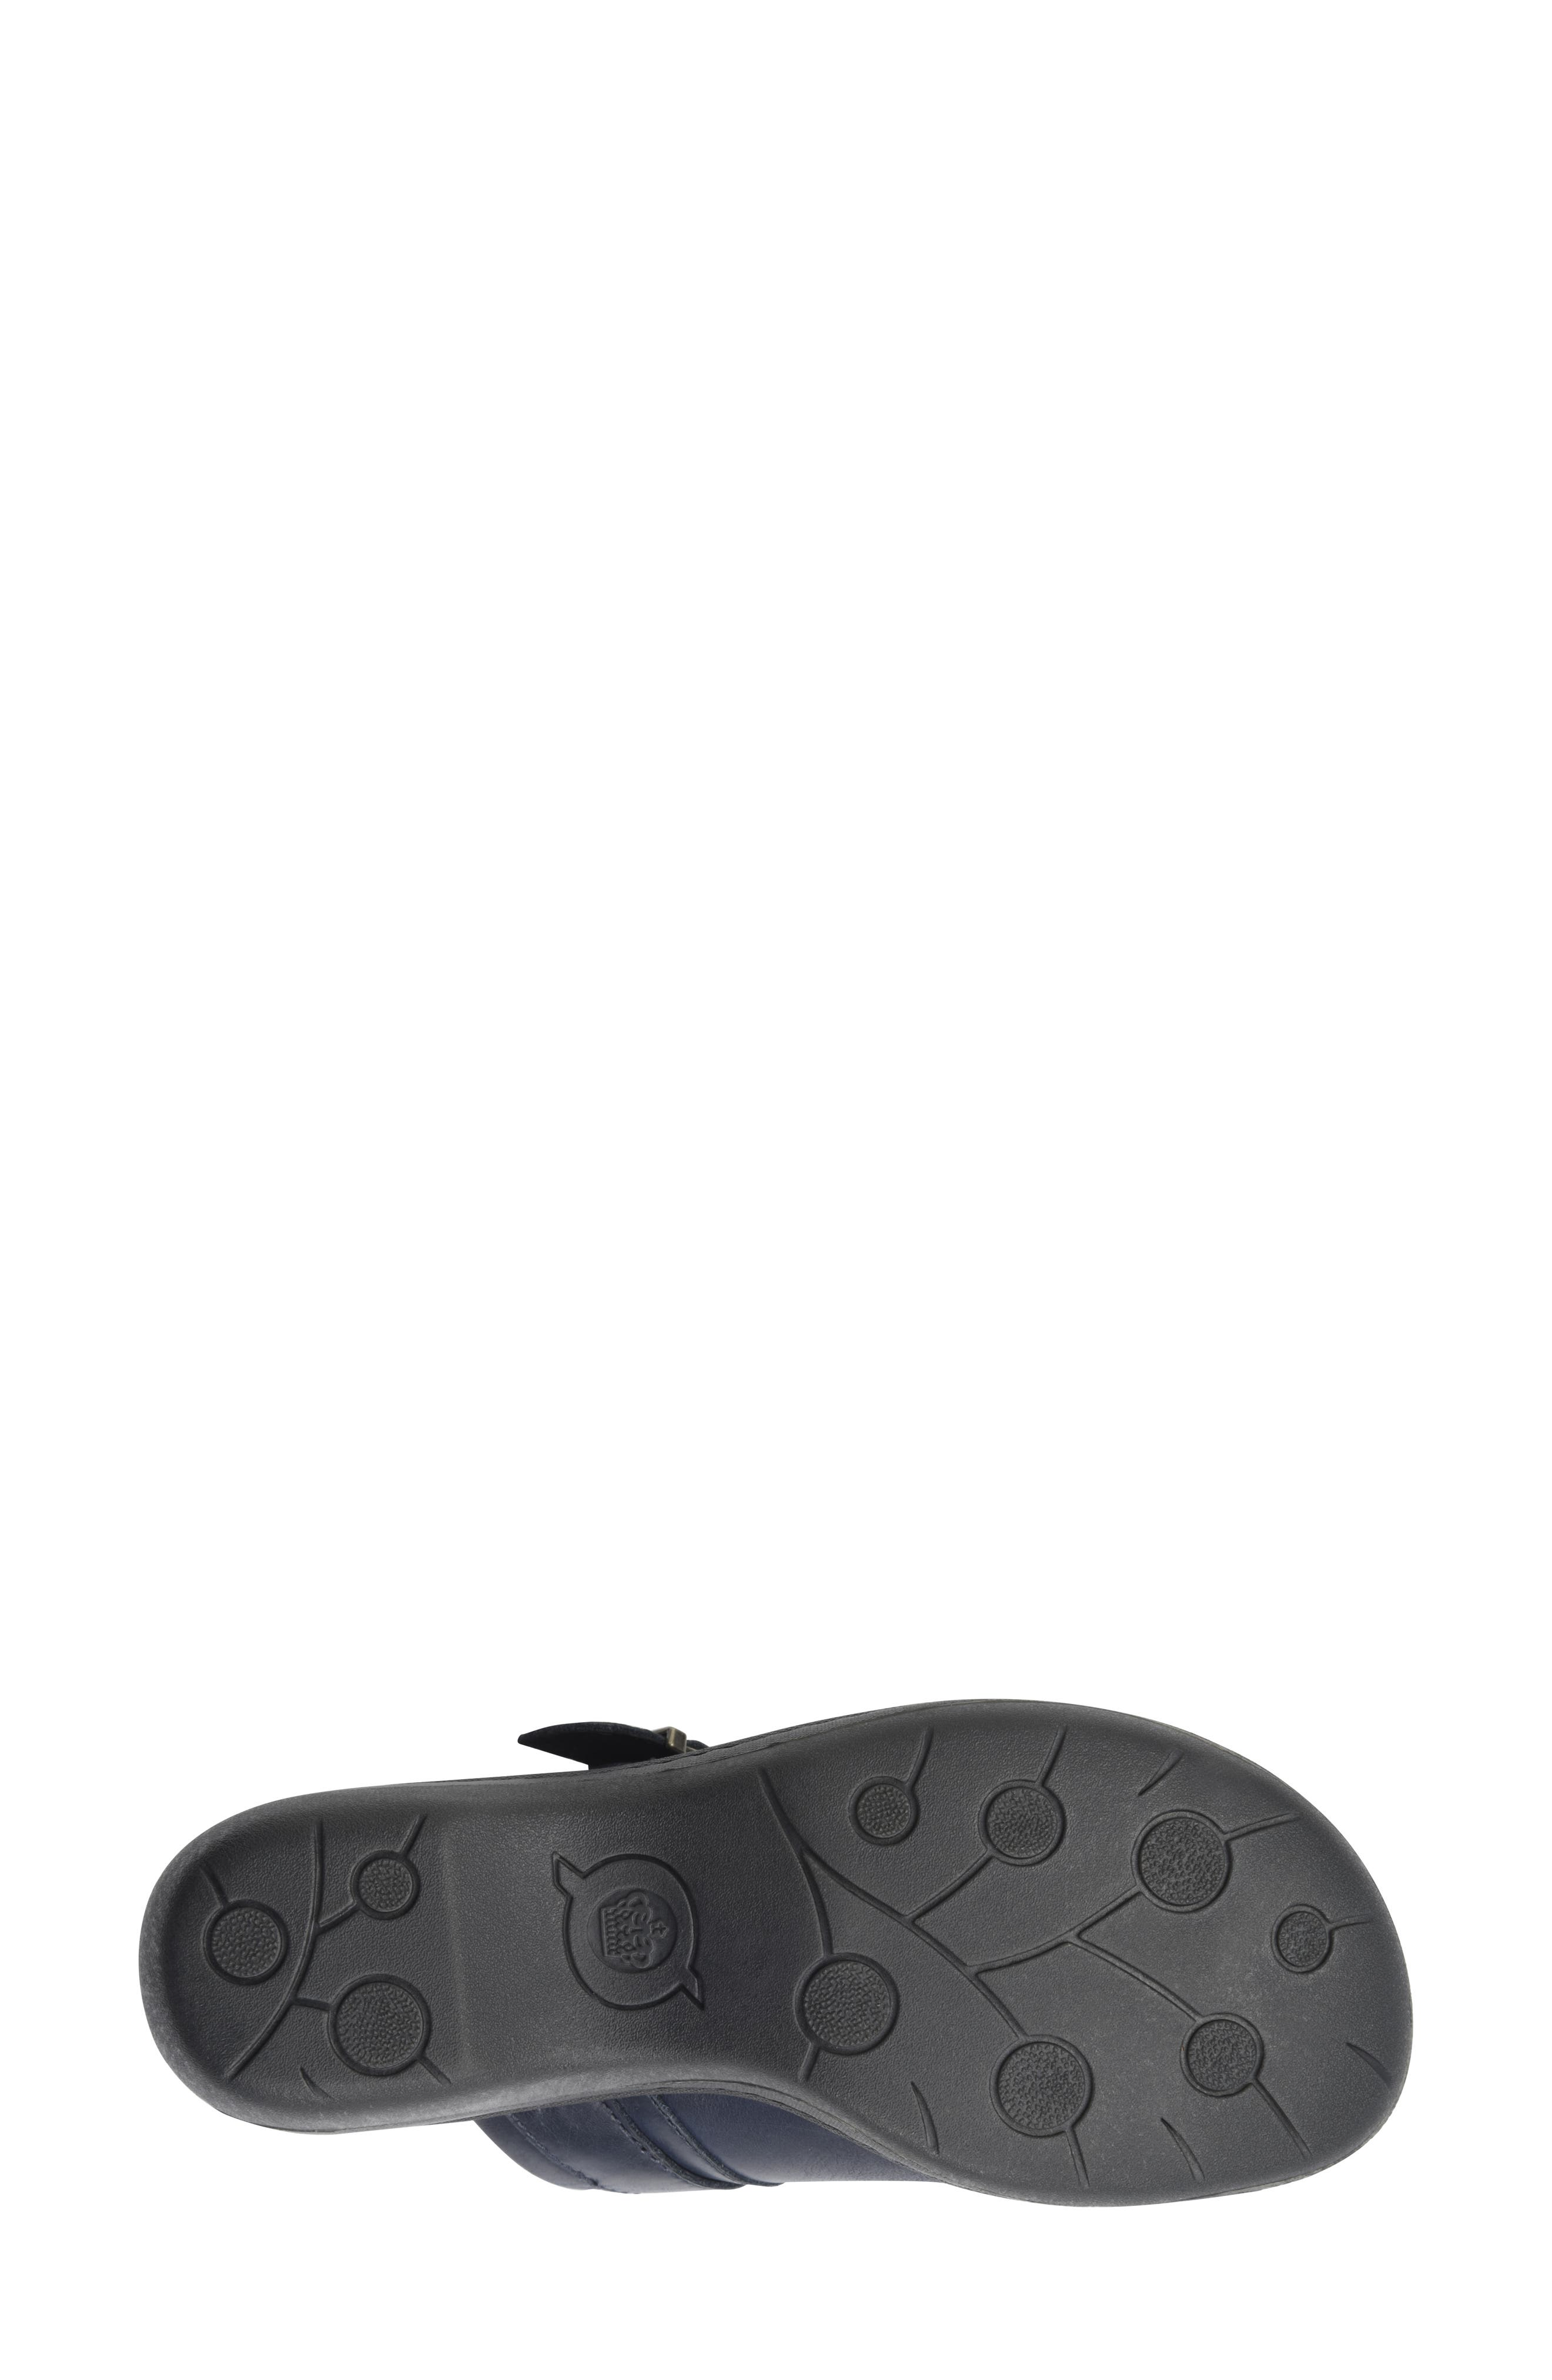 Avoca Clog,                             Alternate thumbnail 6, color,                             NAVY LEATHER